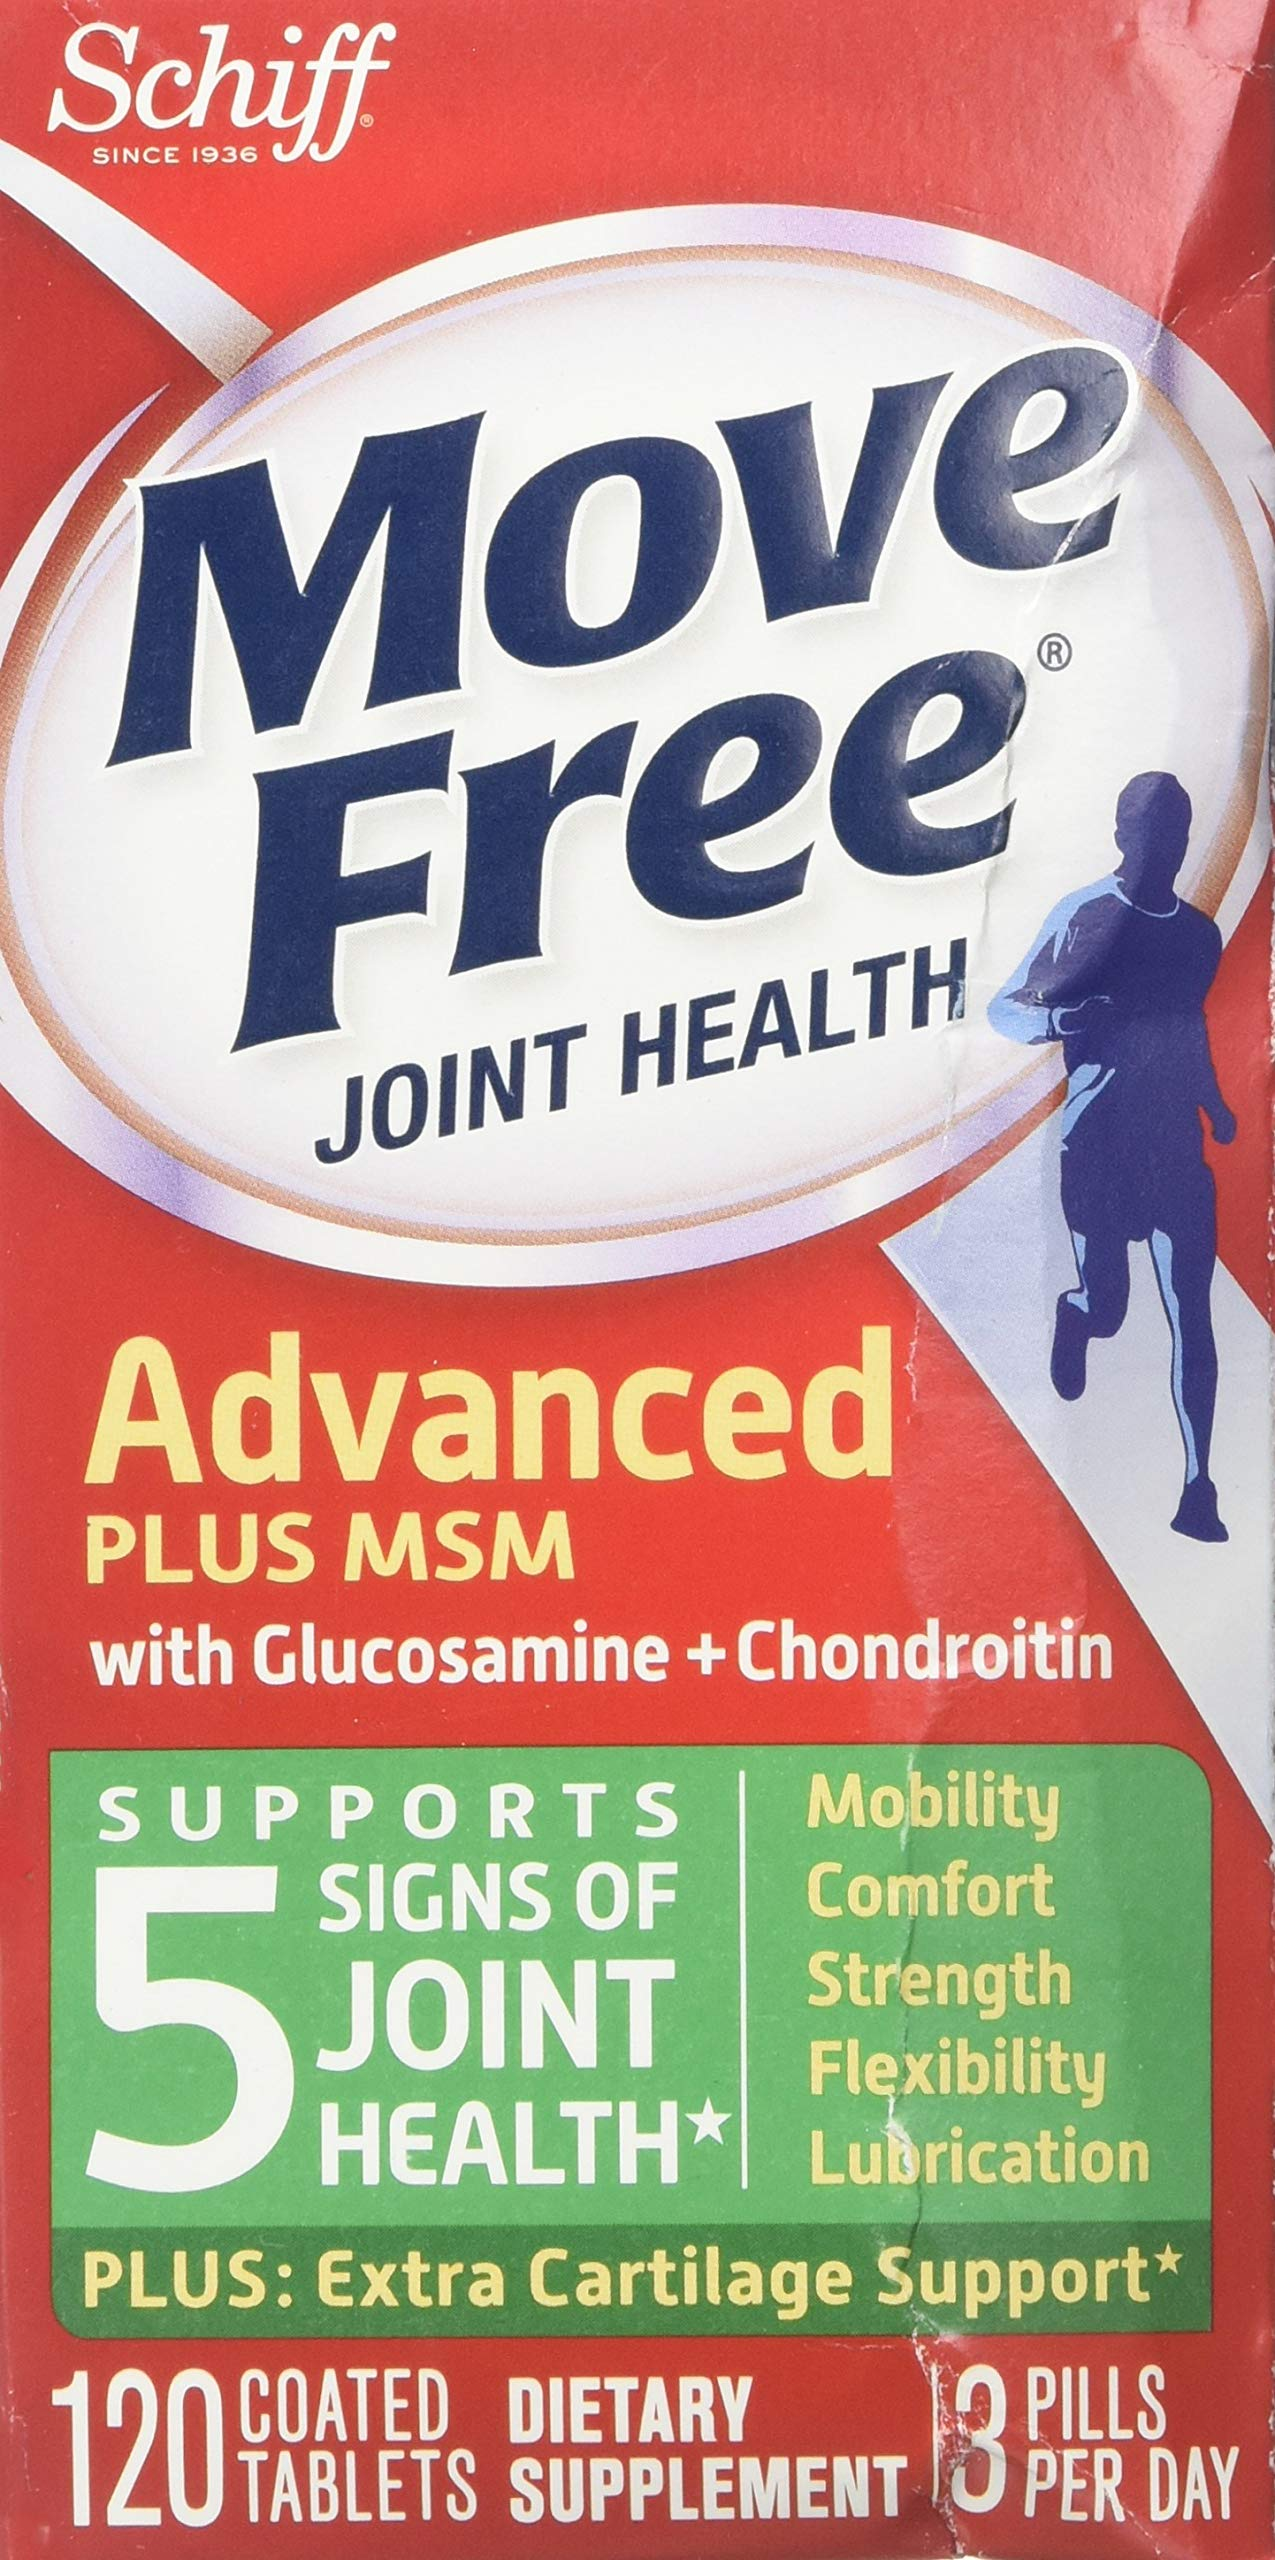 Move Free Advanced Plus MSM, 120 Tablets - Joint Health Supplement with Glucosamine and Chondroitin (Pack of 2)